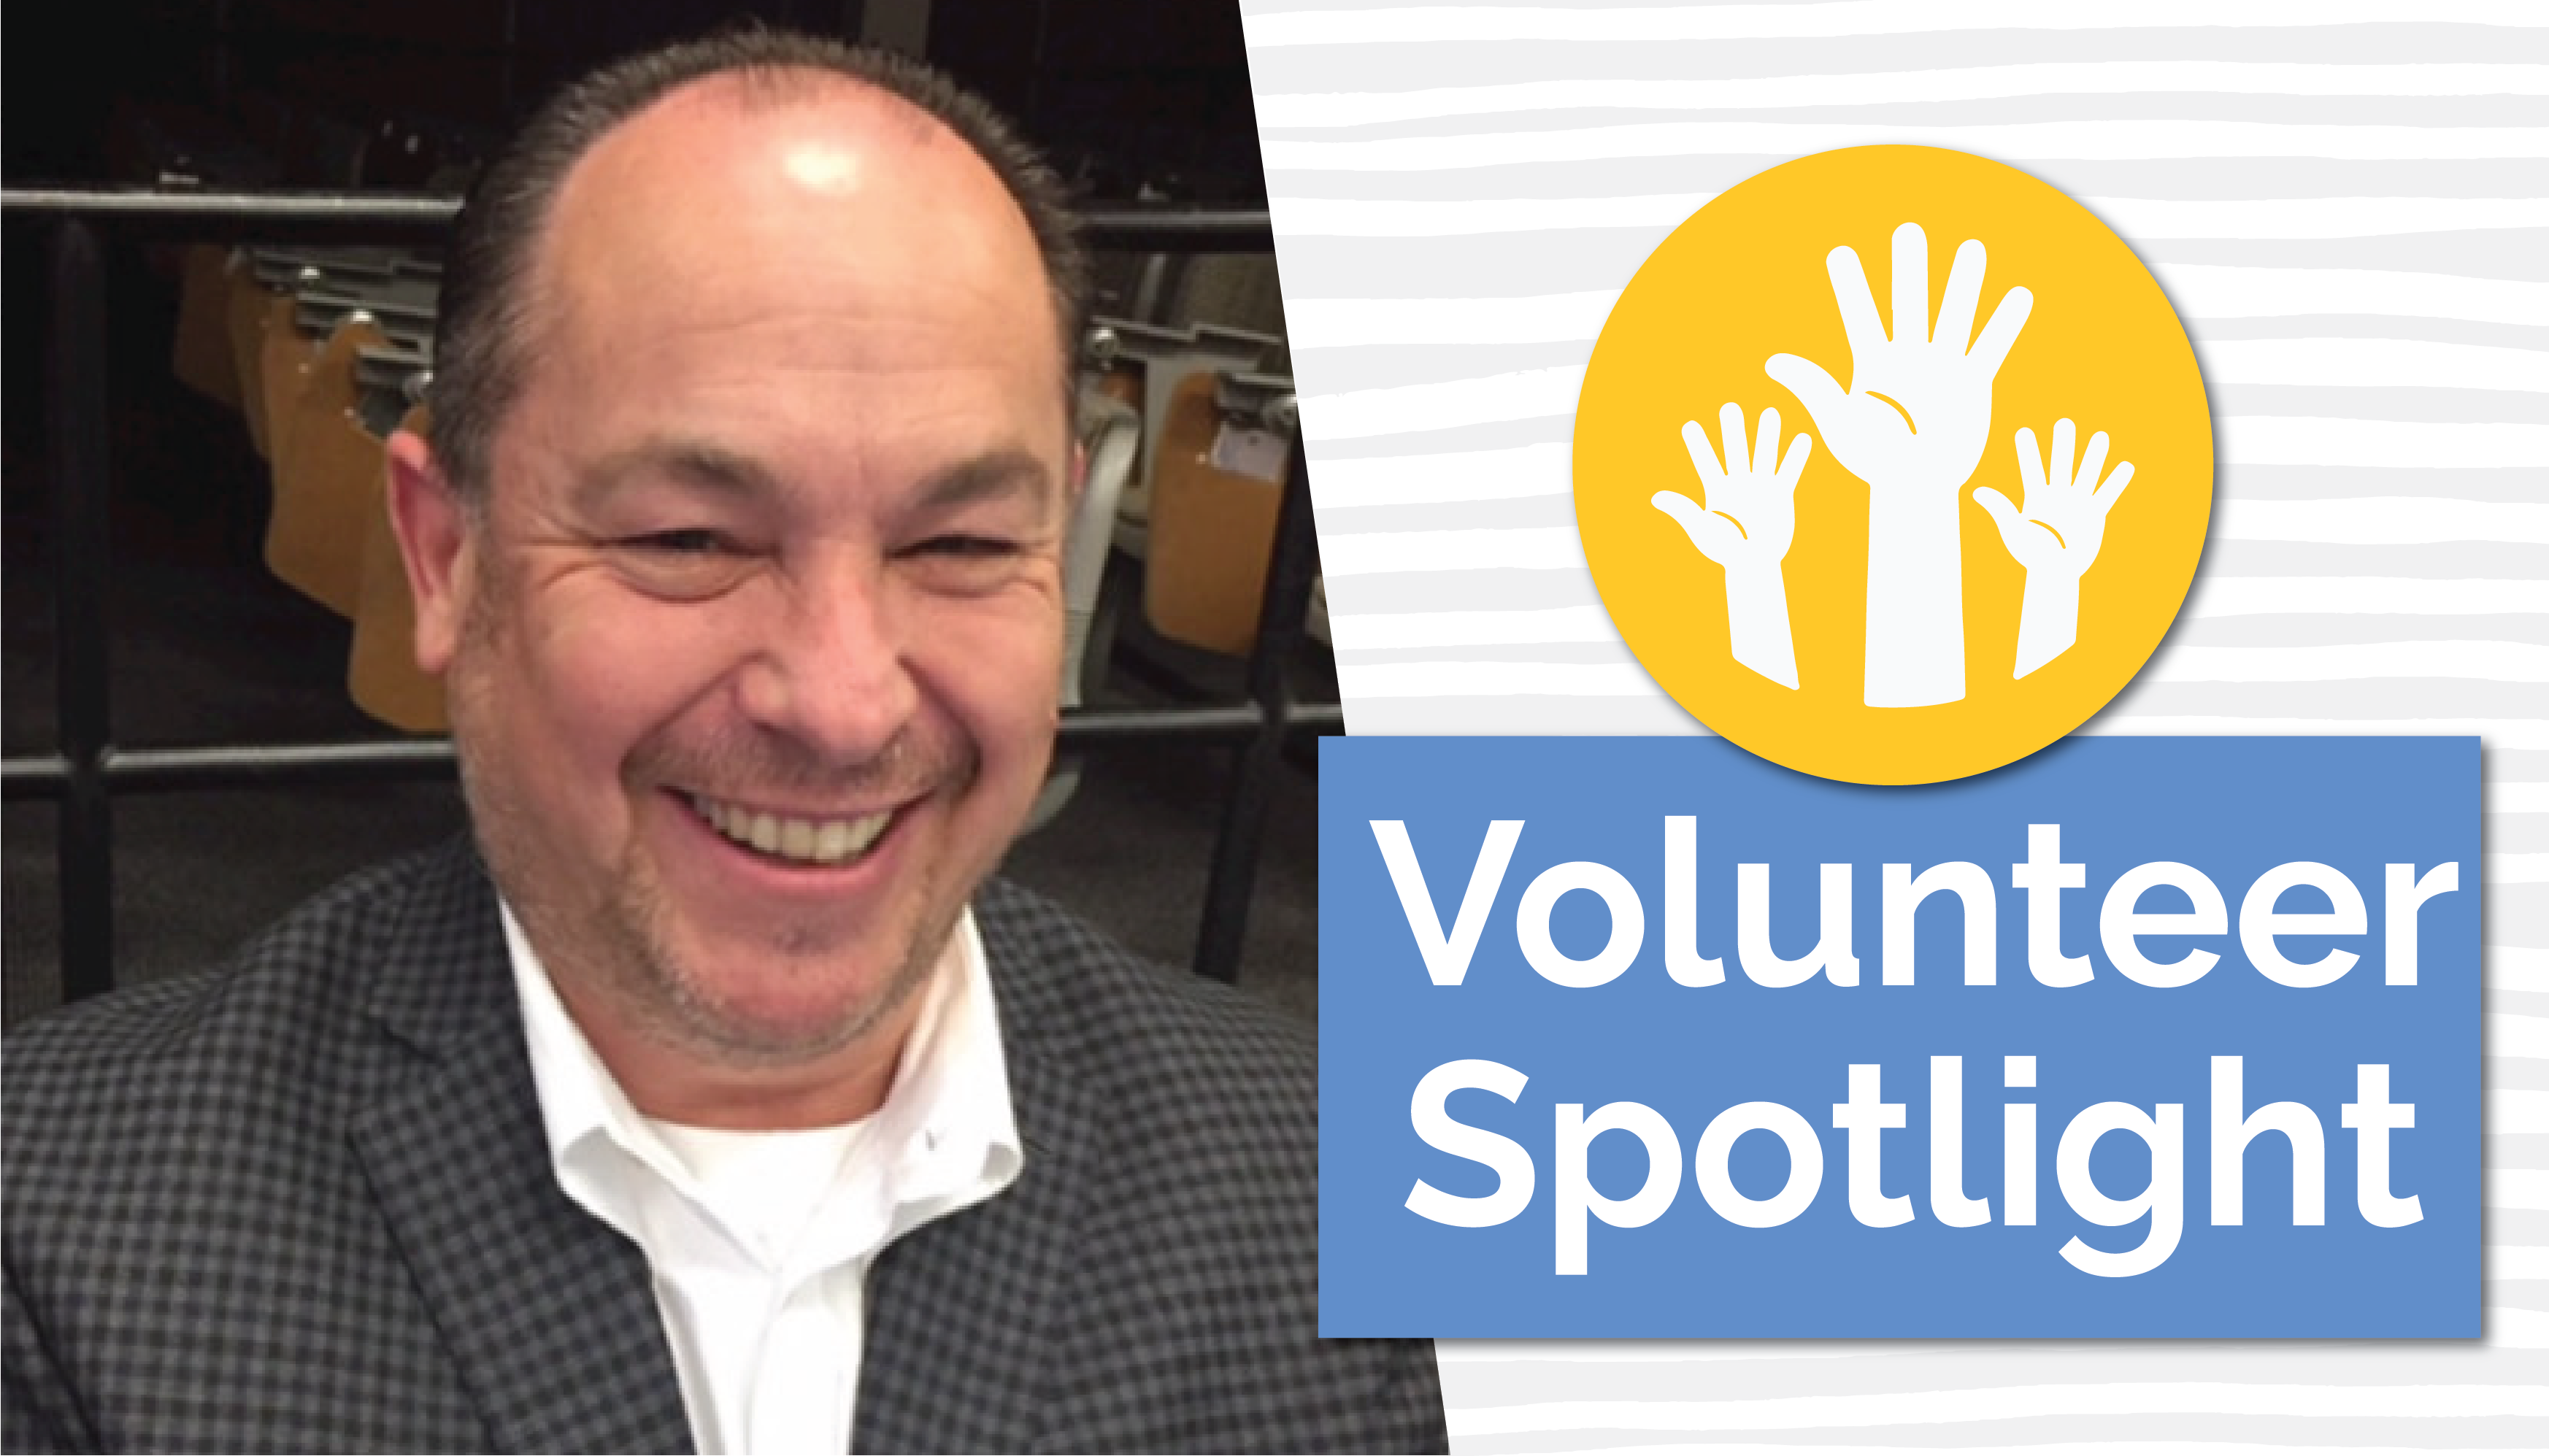 Volunteer Spotlight - Scott graphic